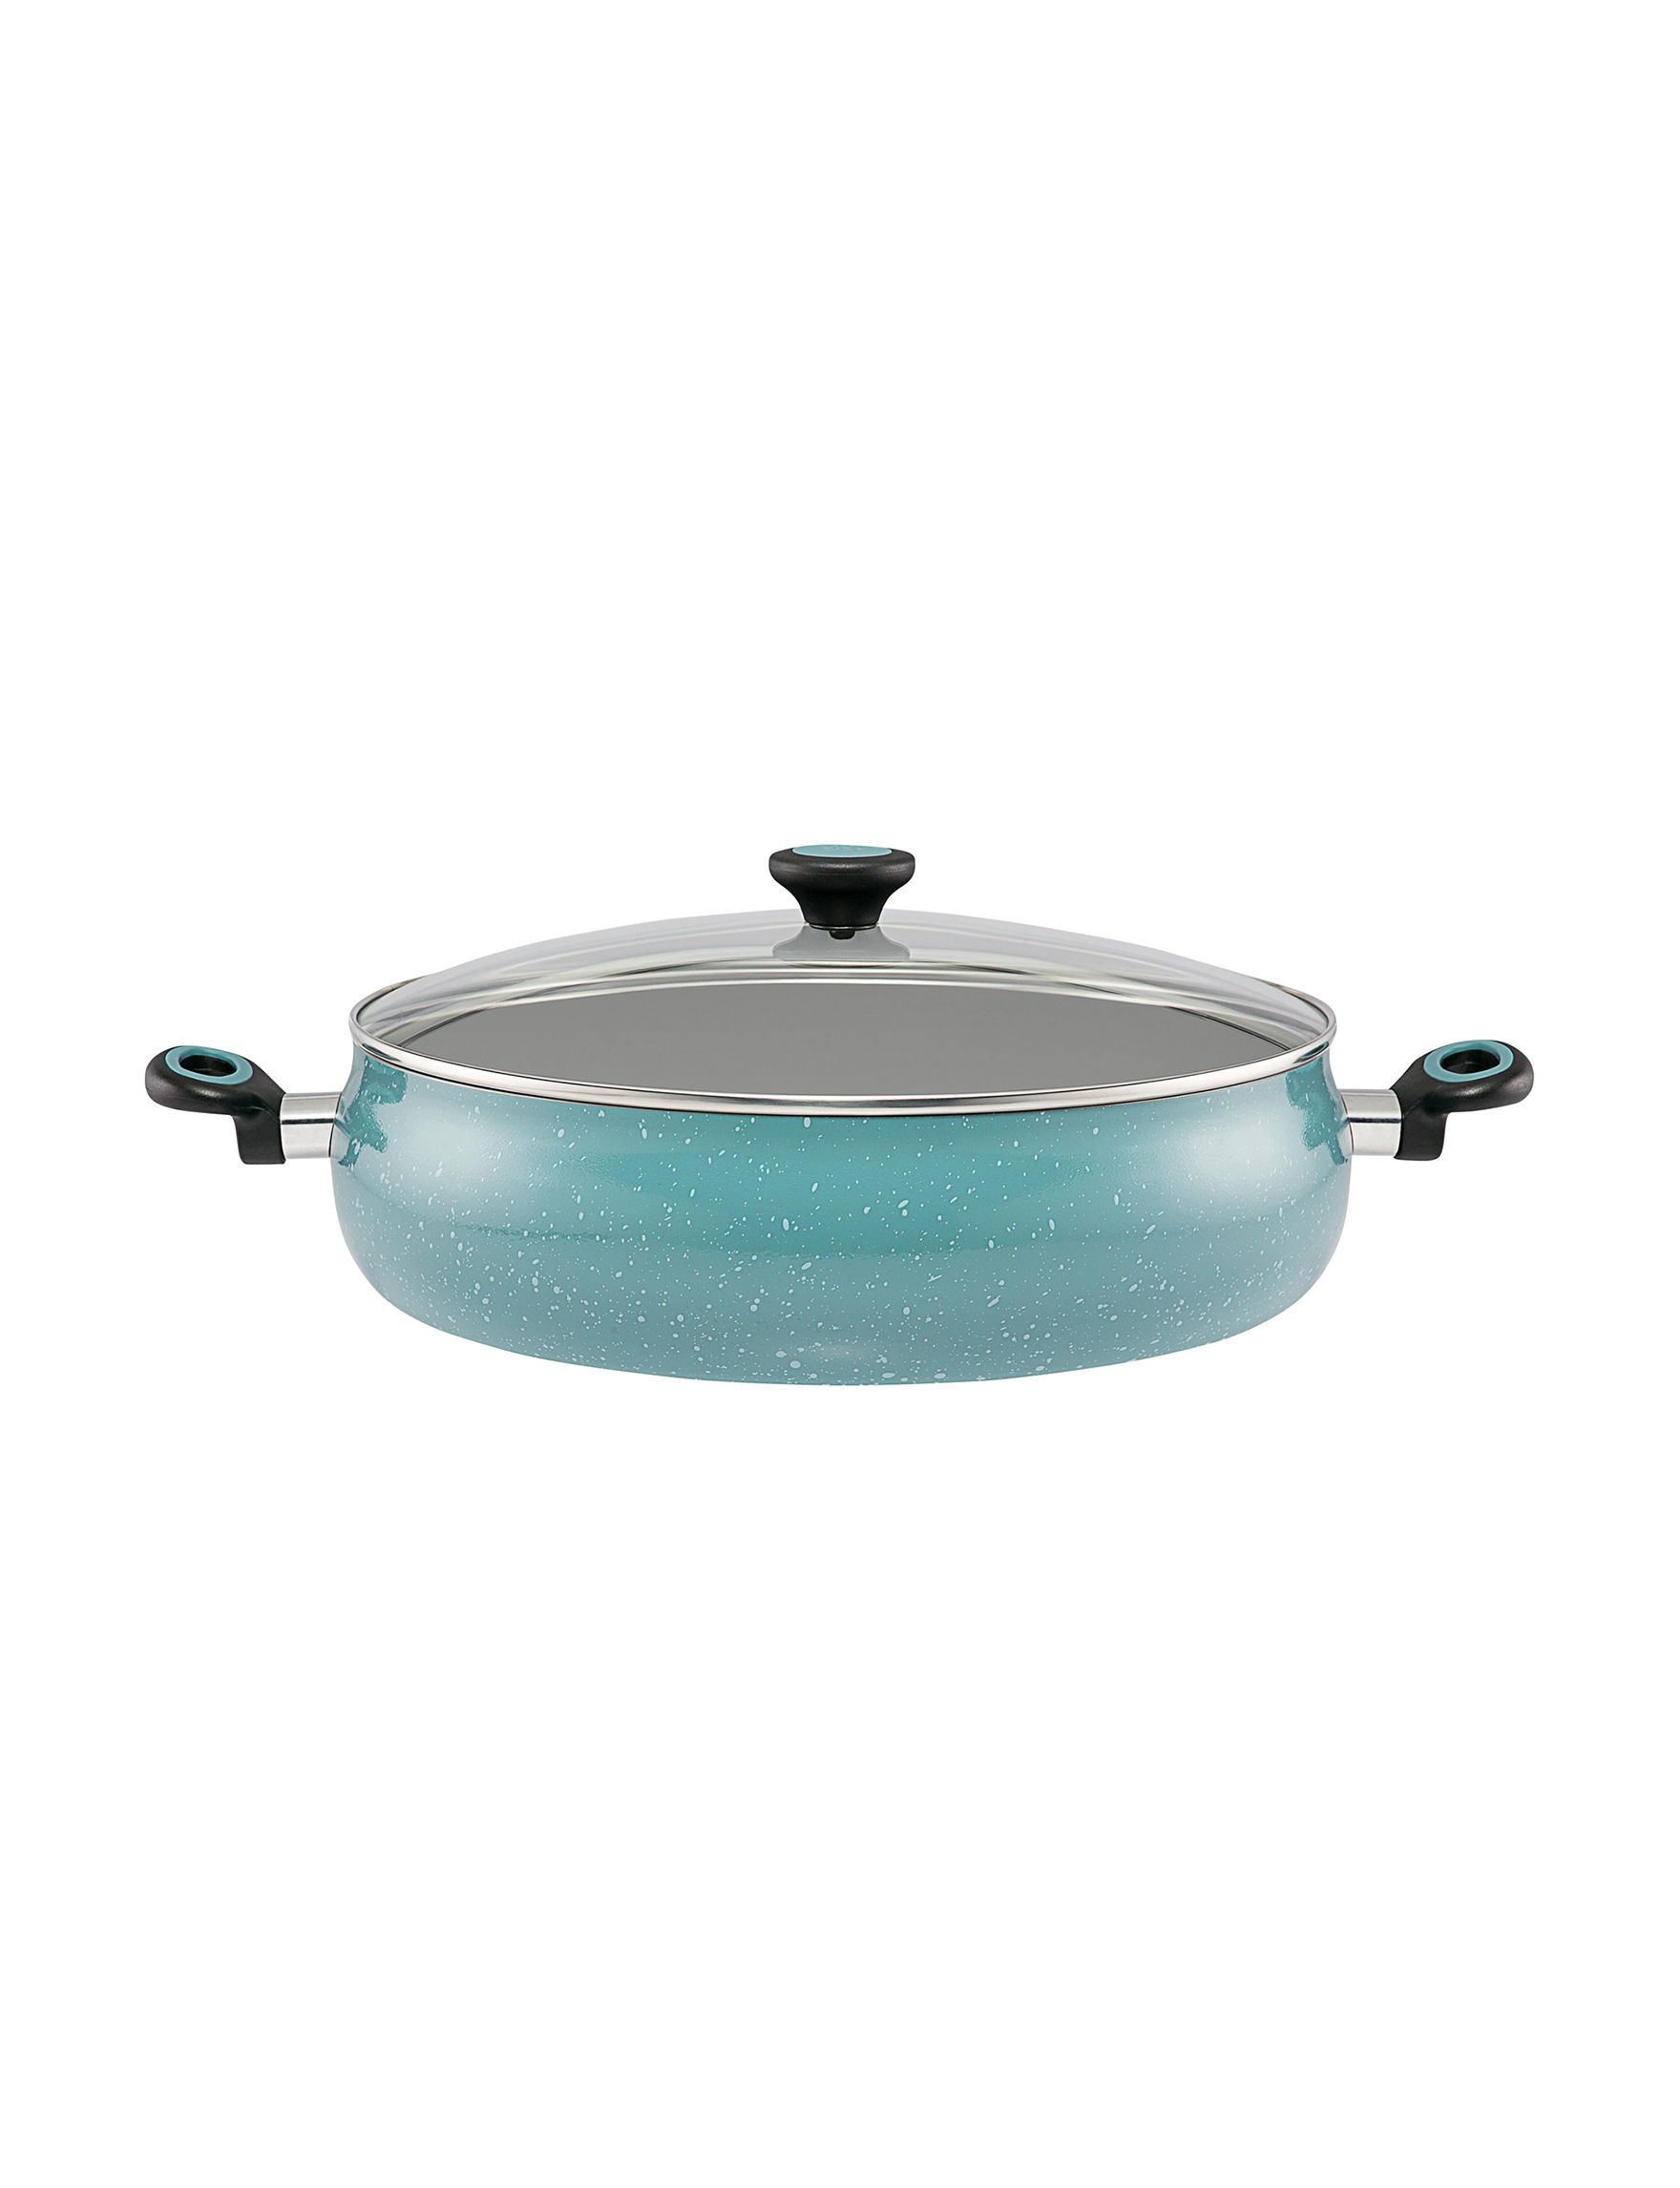 Paula Deen Turquoise Frying Pans & Skillets Cookware